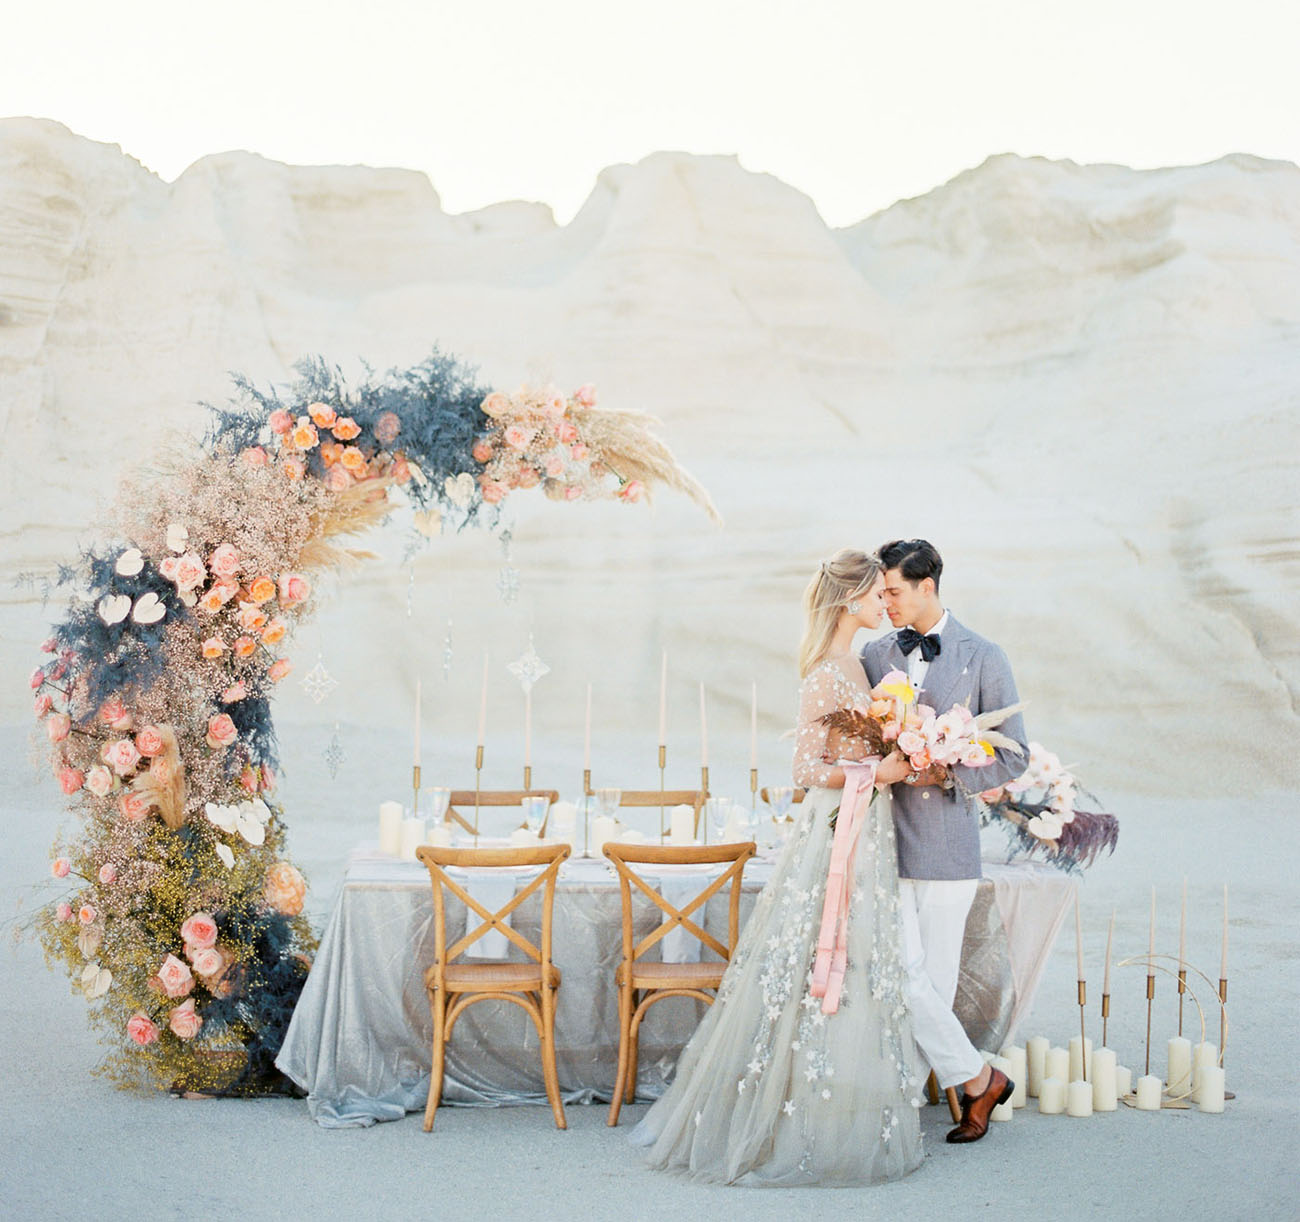 Romance + Whimsy Meets Celestial Elopement Inspiration in Milos, Greece